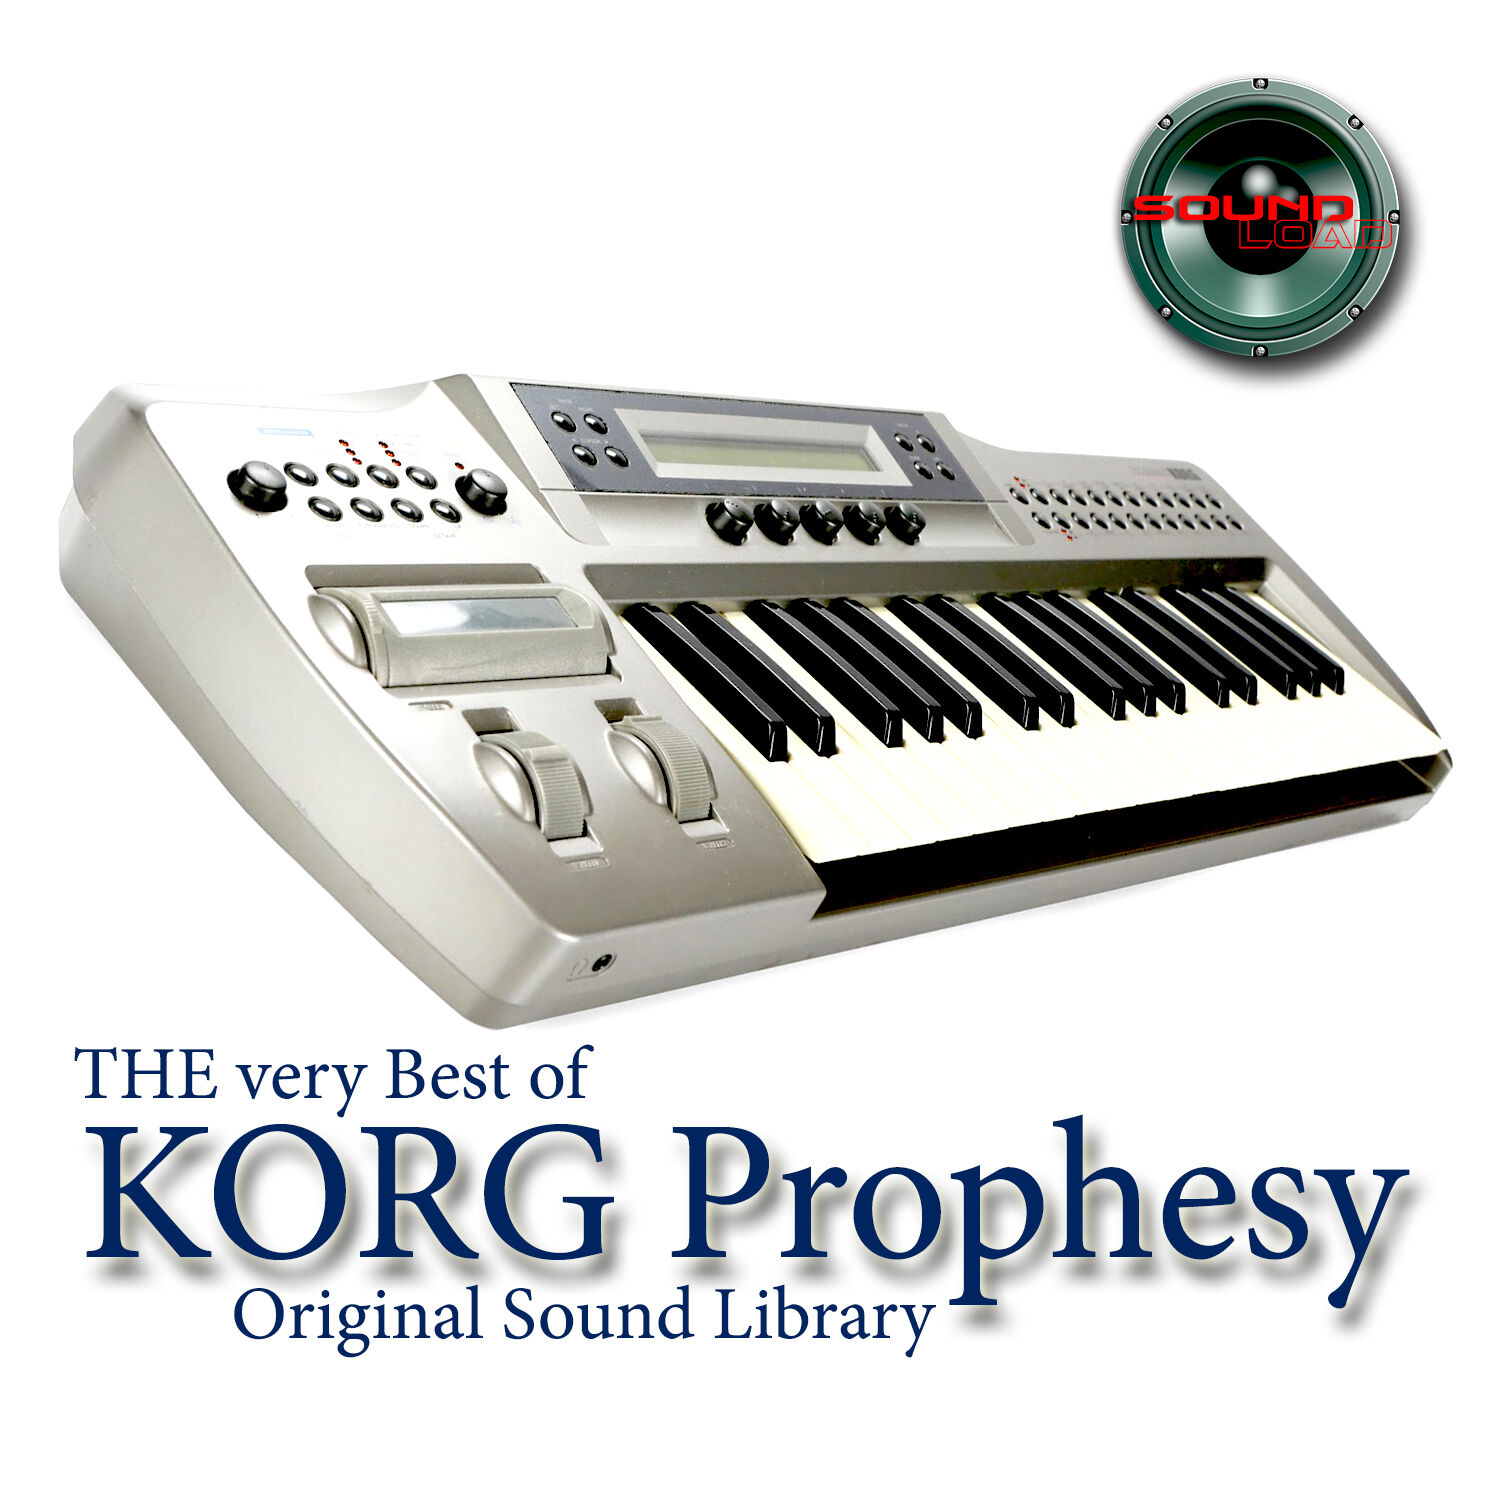 KORG 01/W THE very Best of - Large Original 24bit WAVE